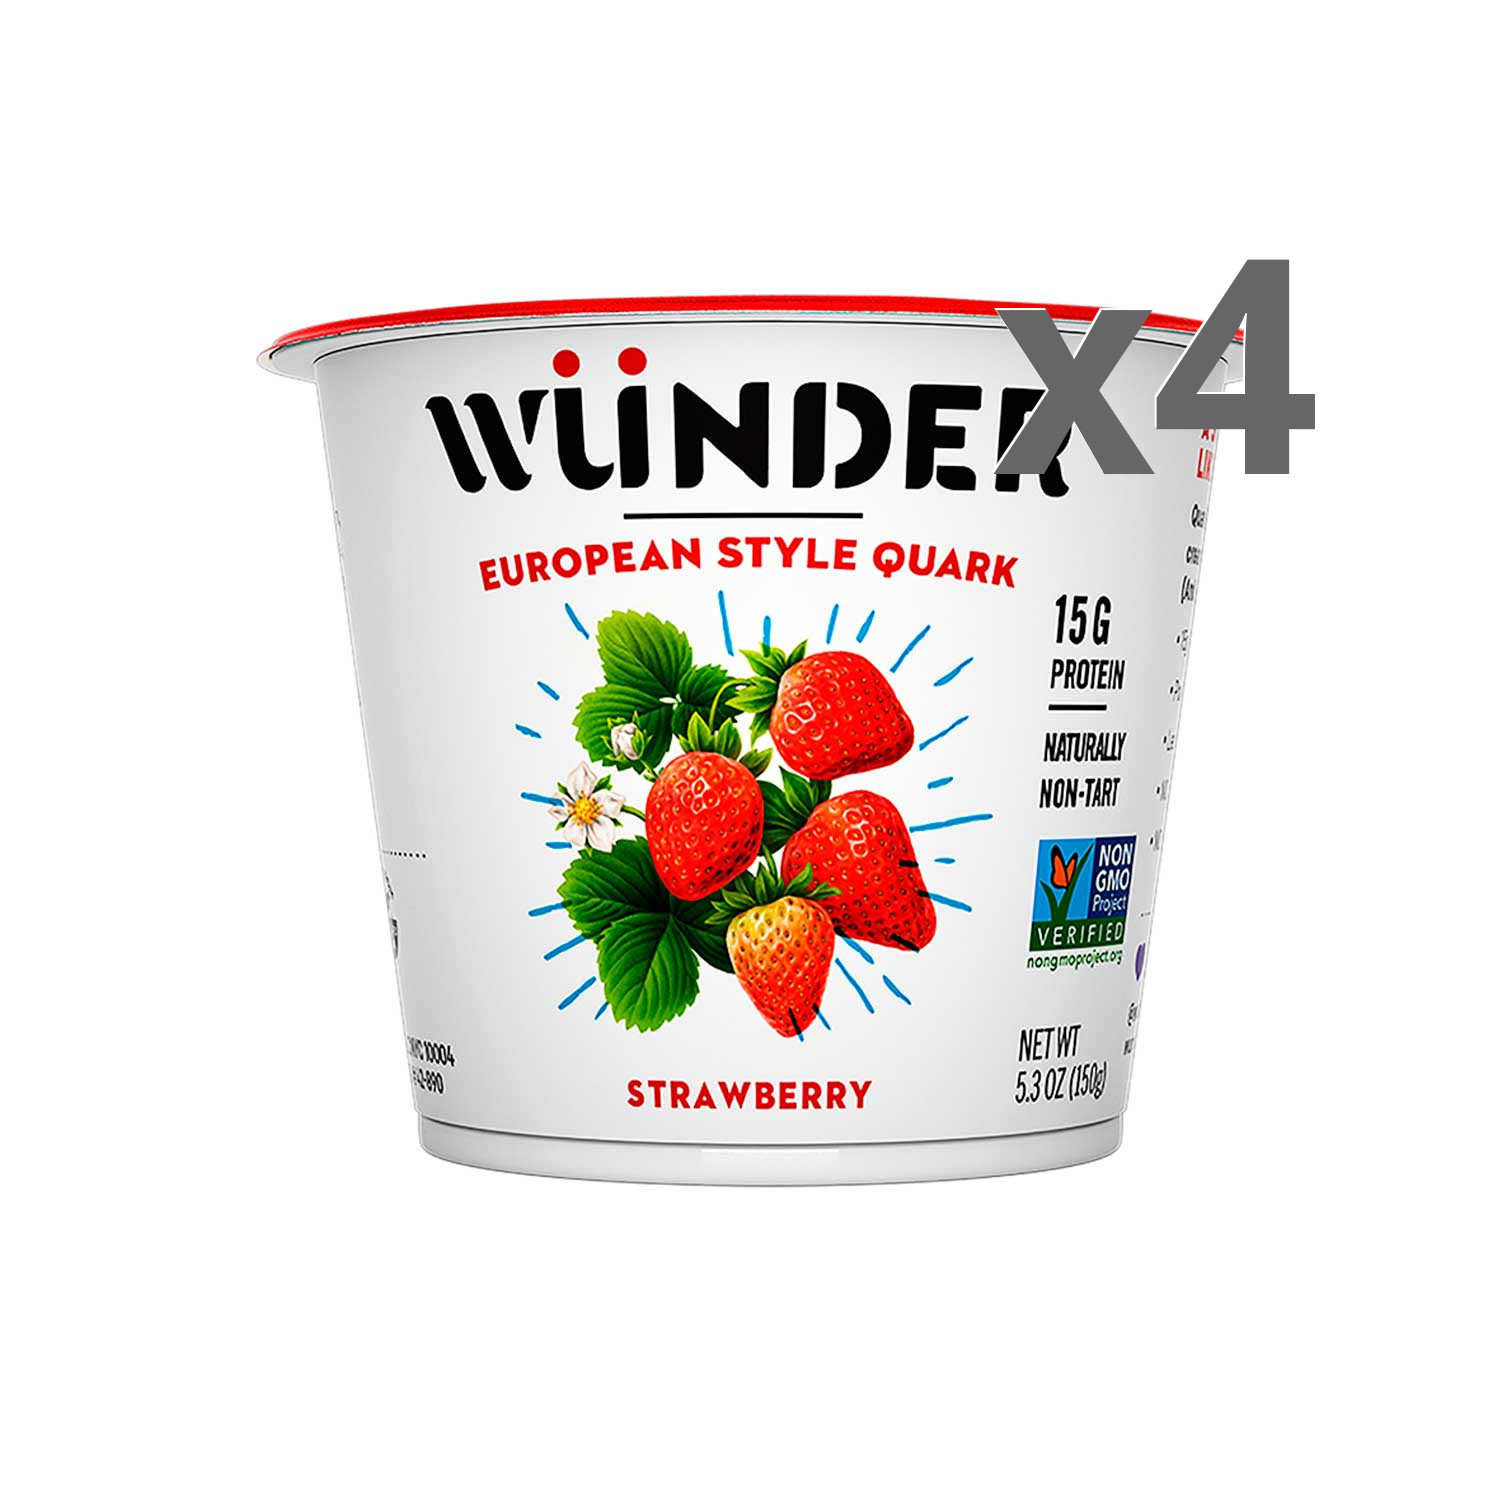 Wunder Creamery 4-Pack Strawberry